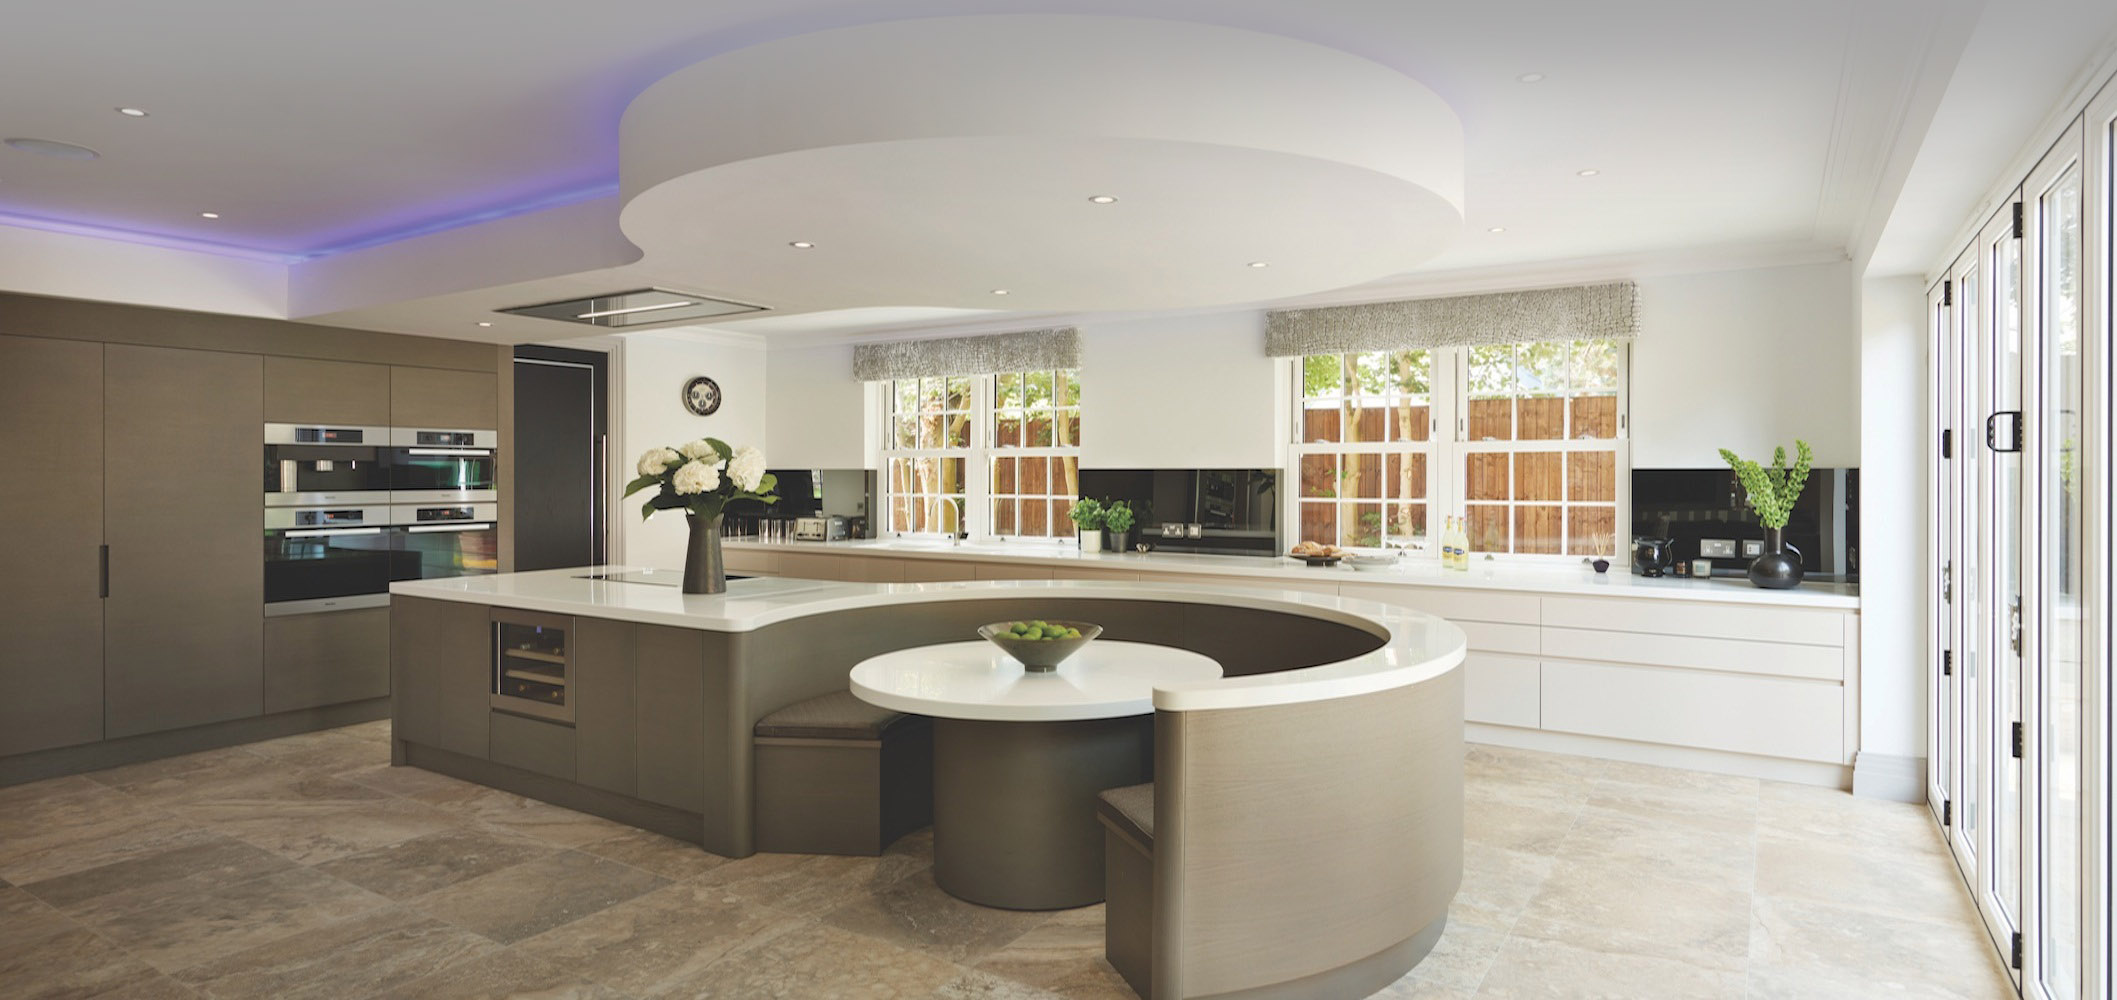 20 state of the art modern kitchen designs by reeva design for Kitchen island with round seating area